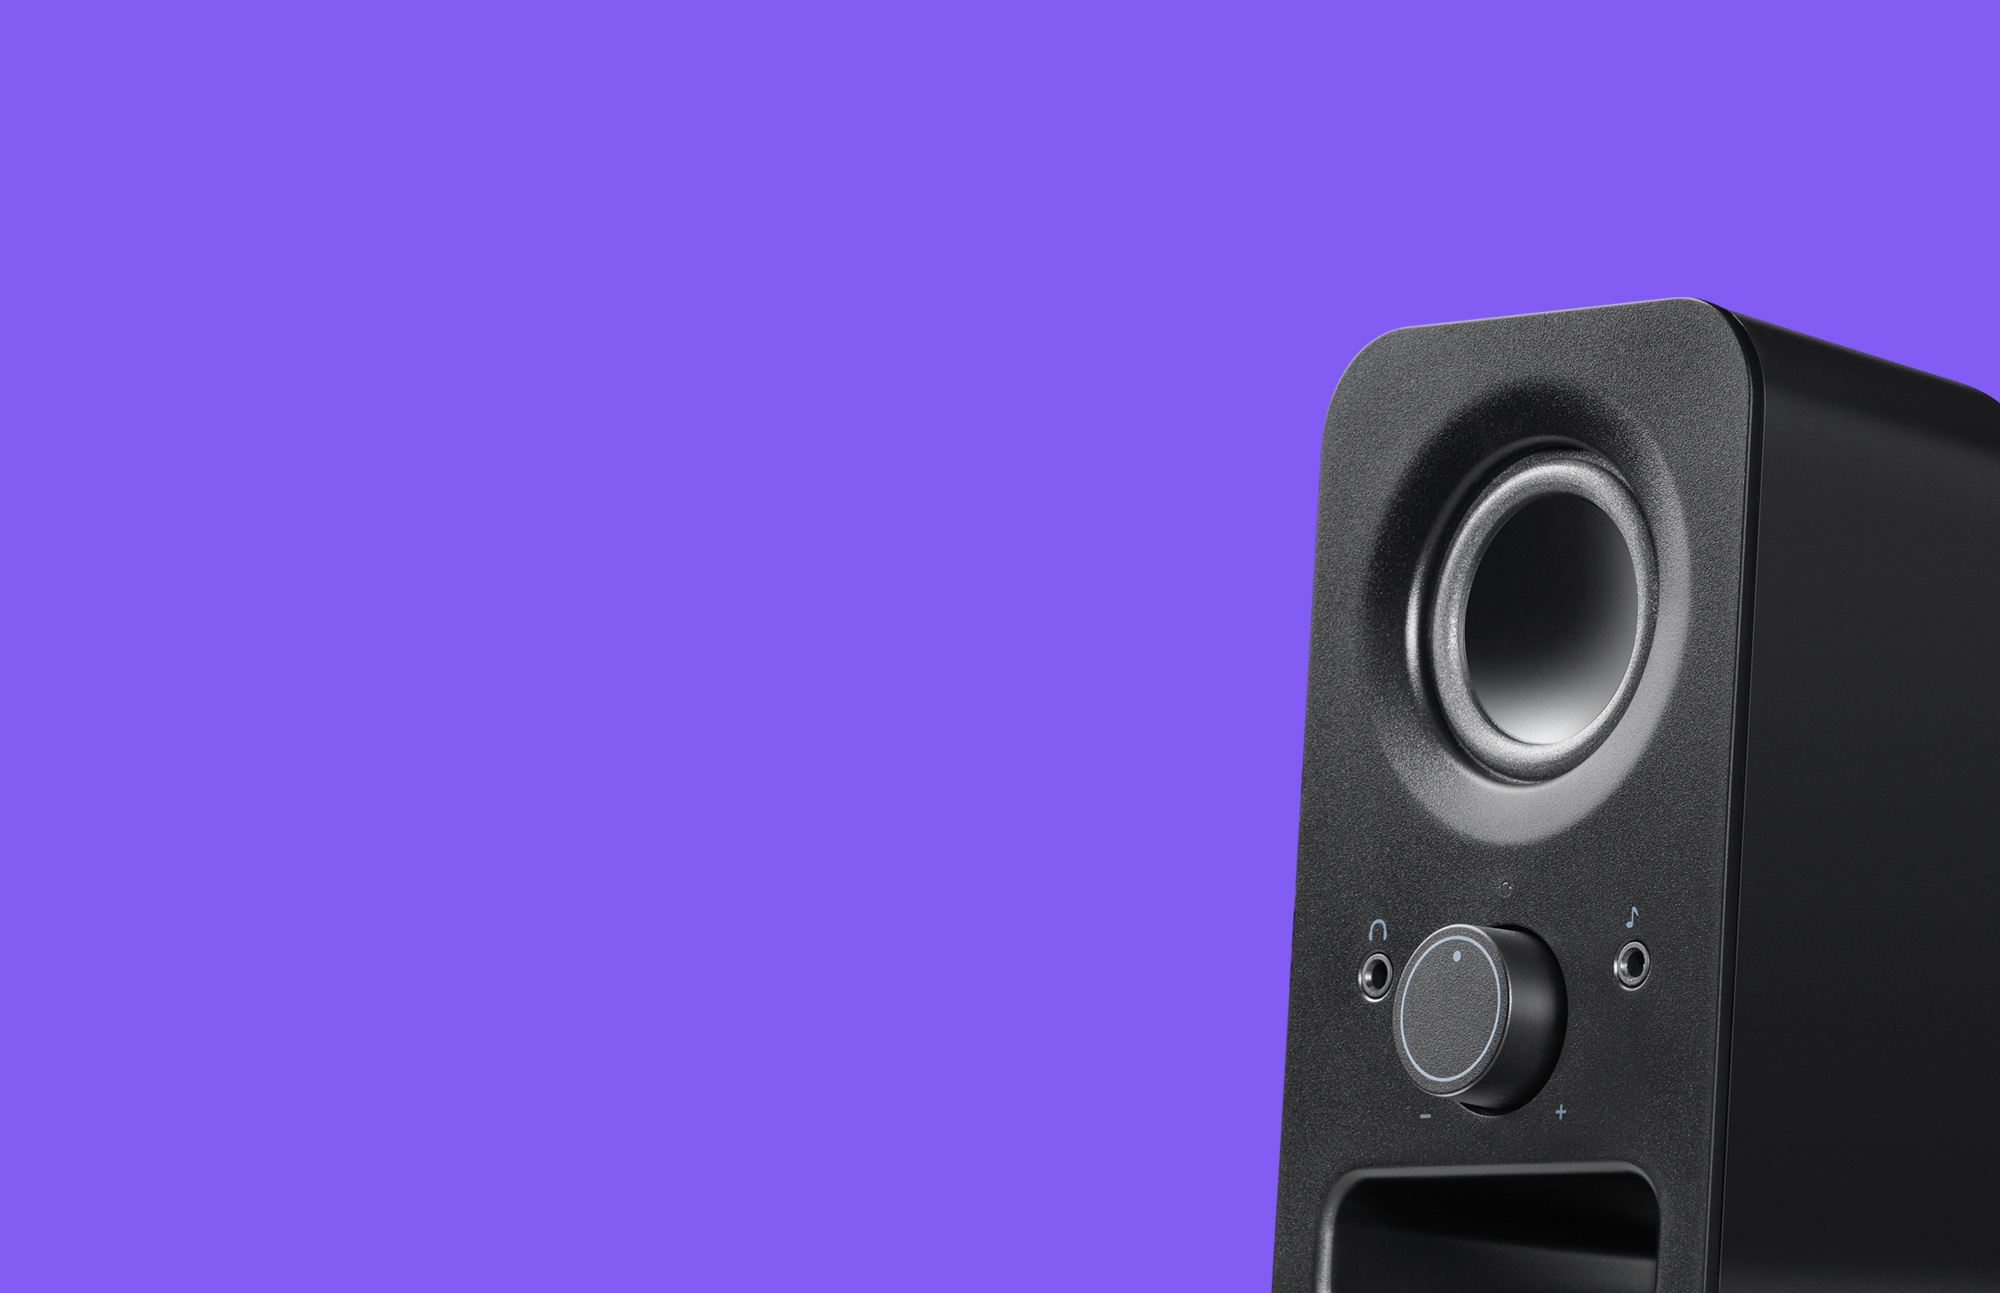 Side-view Z150 Clear Stereo Sound Black Speaker with purple background